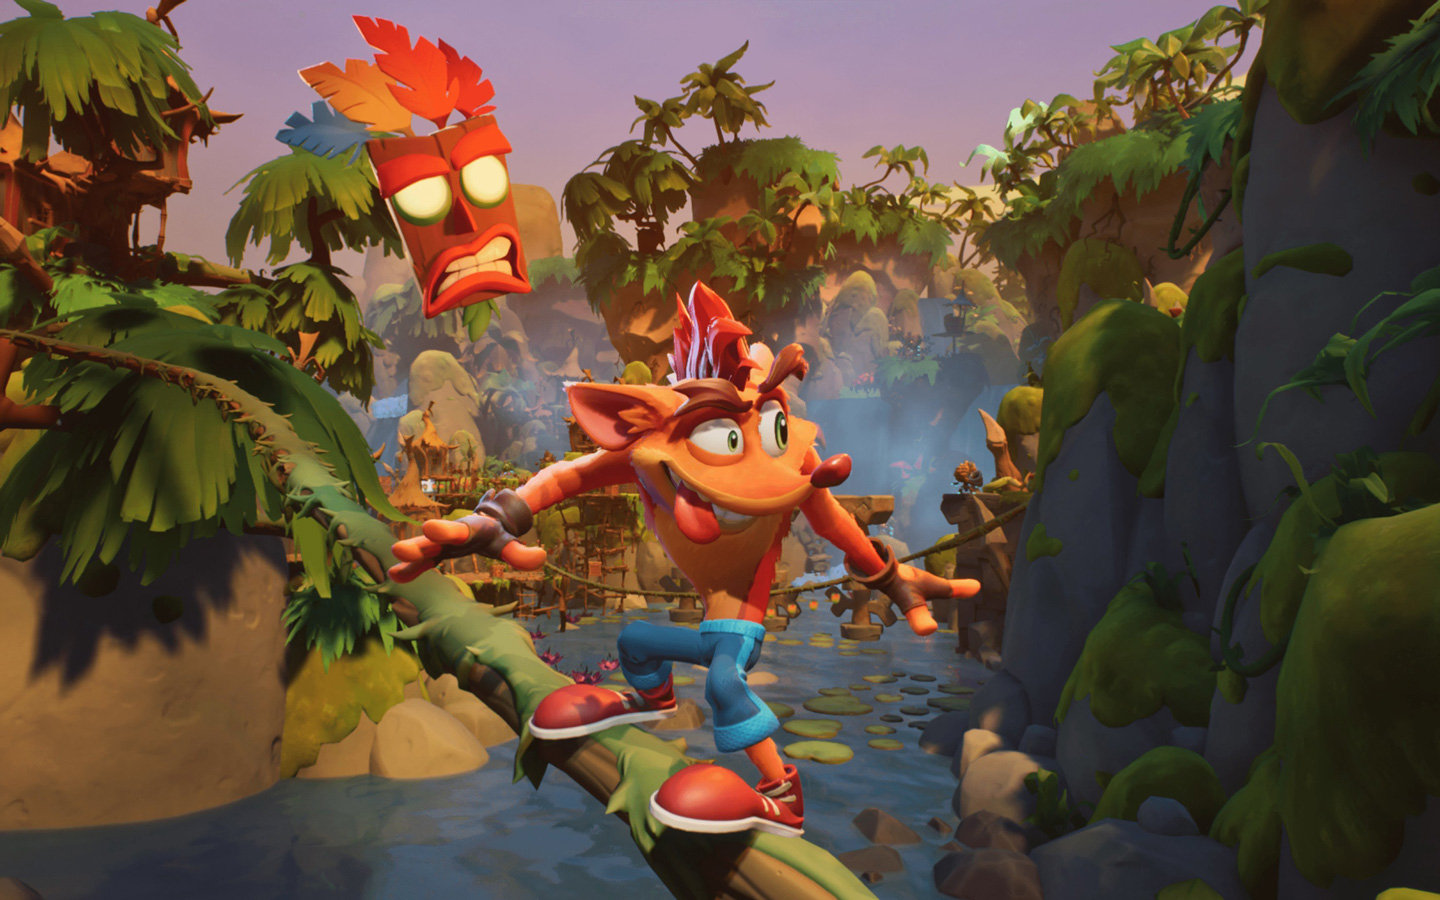 Crash Bandicoot 4: It's About Time Wallpaper in 1440x900